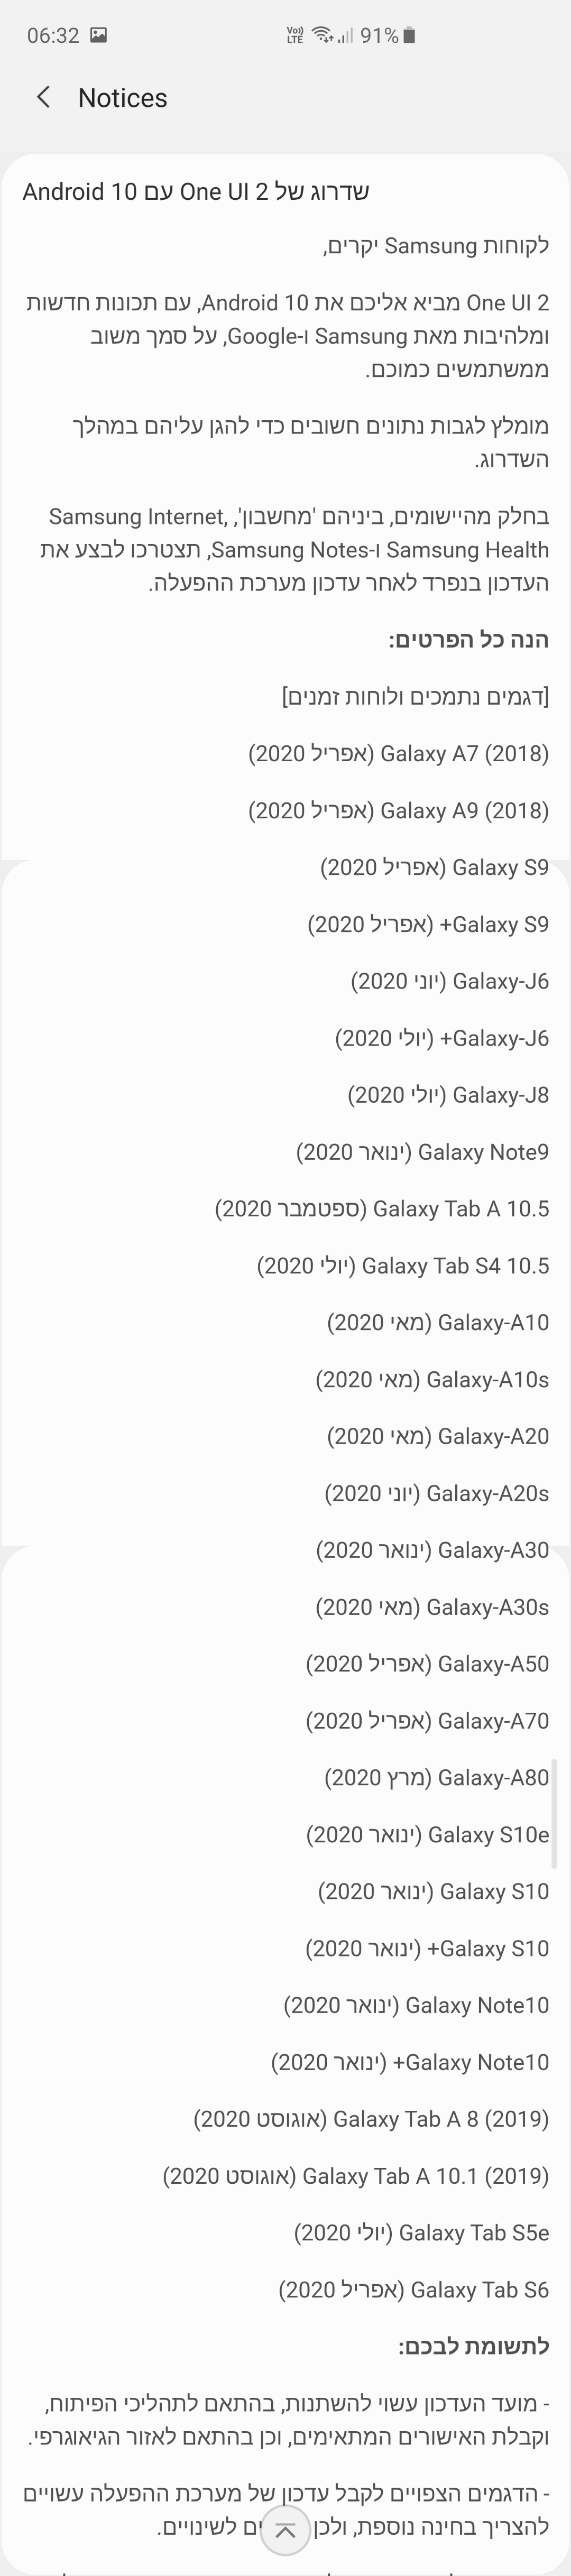 [UPDATED] Samsung phones getting Android 10 + One UI 2.0 update in January 1